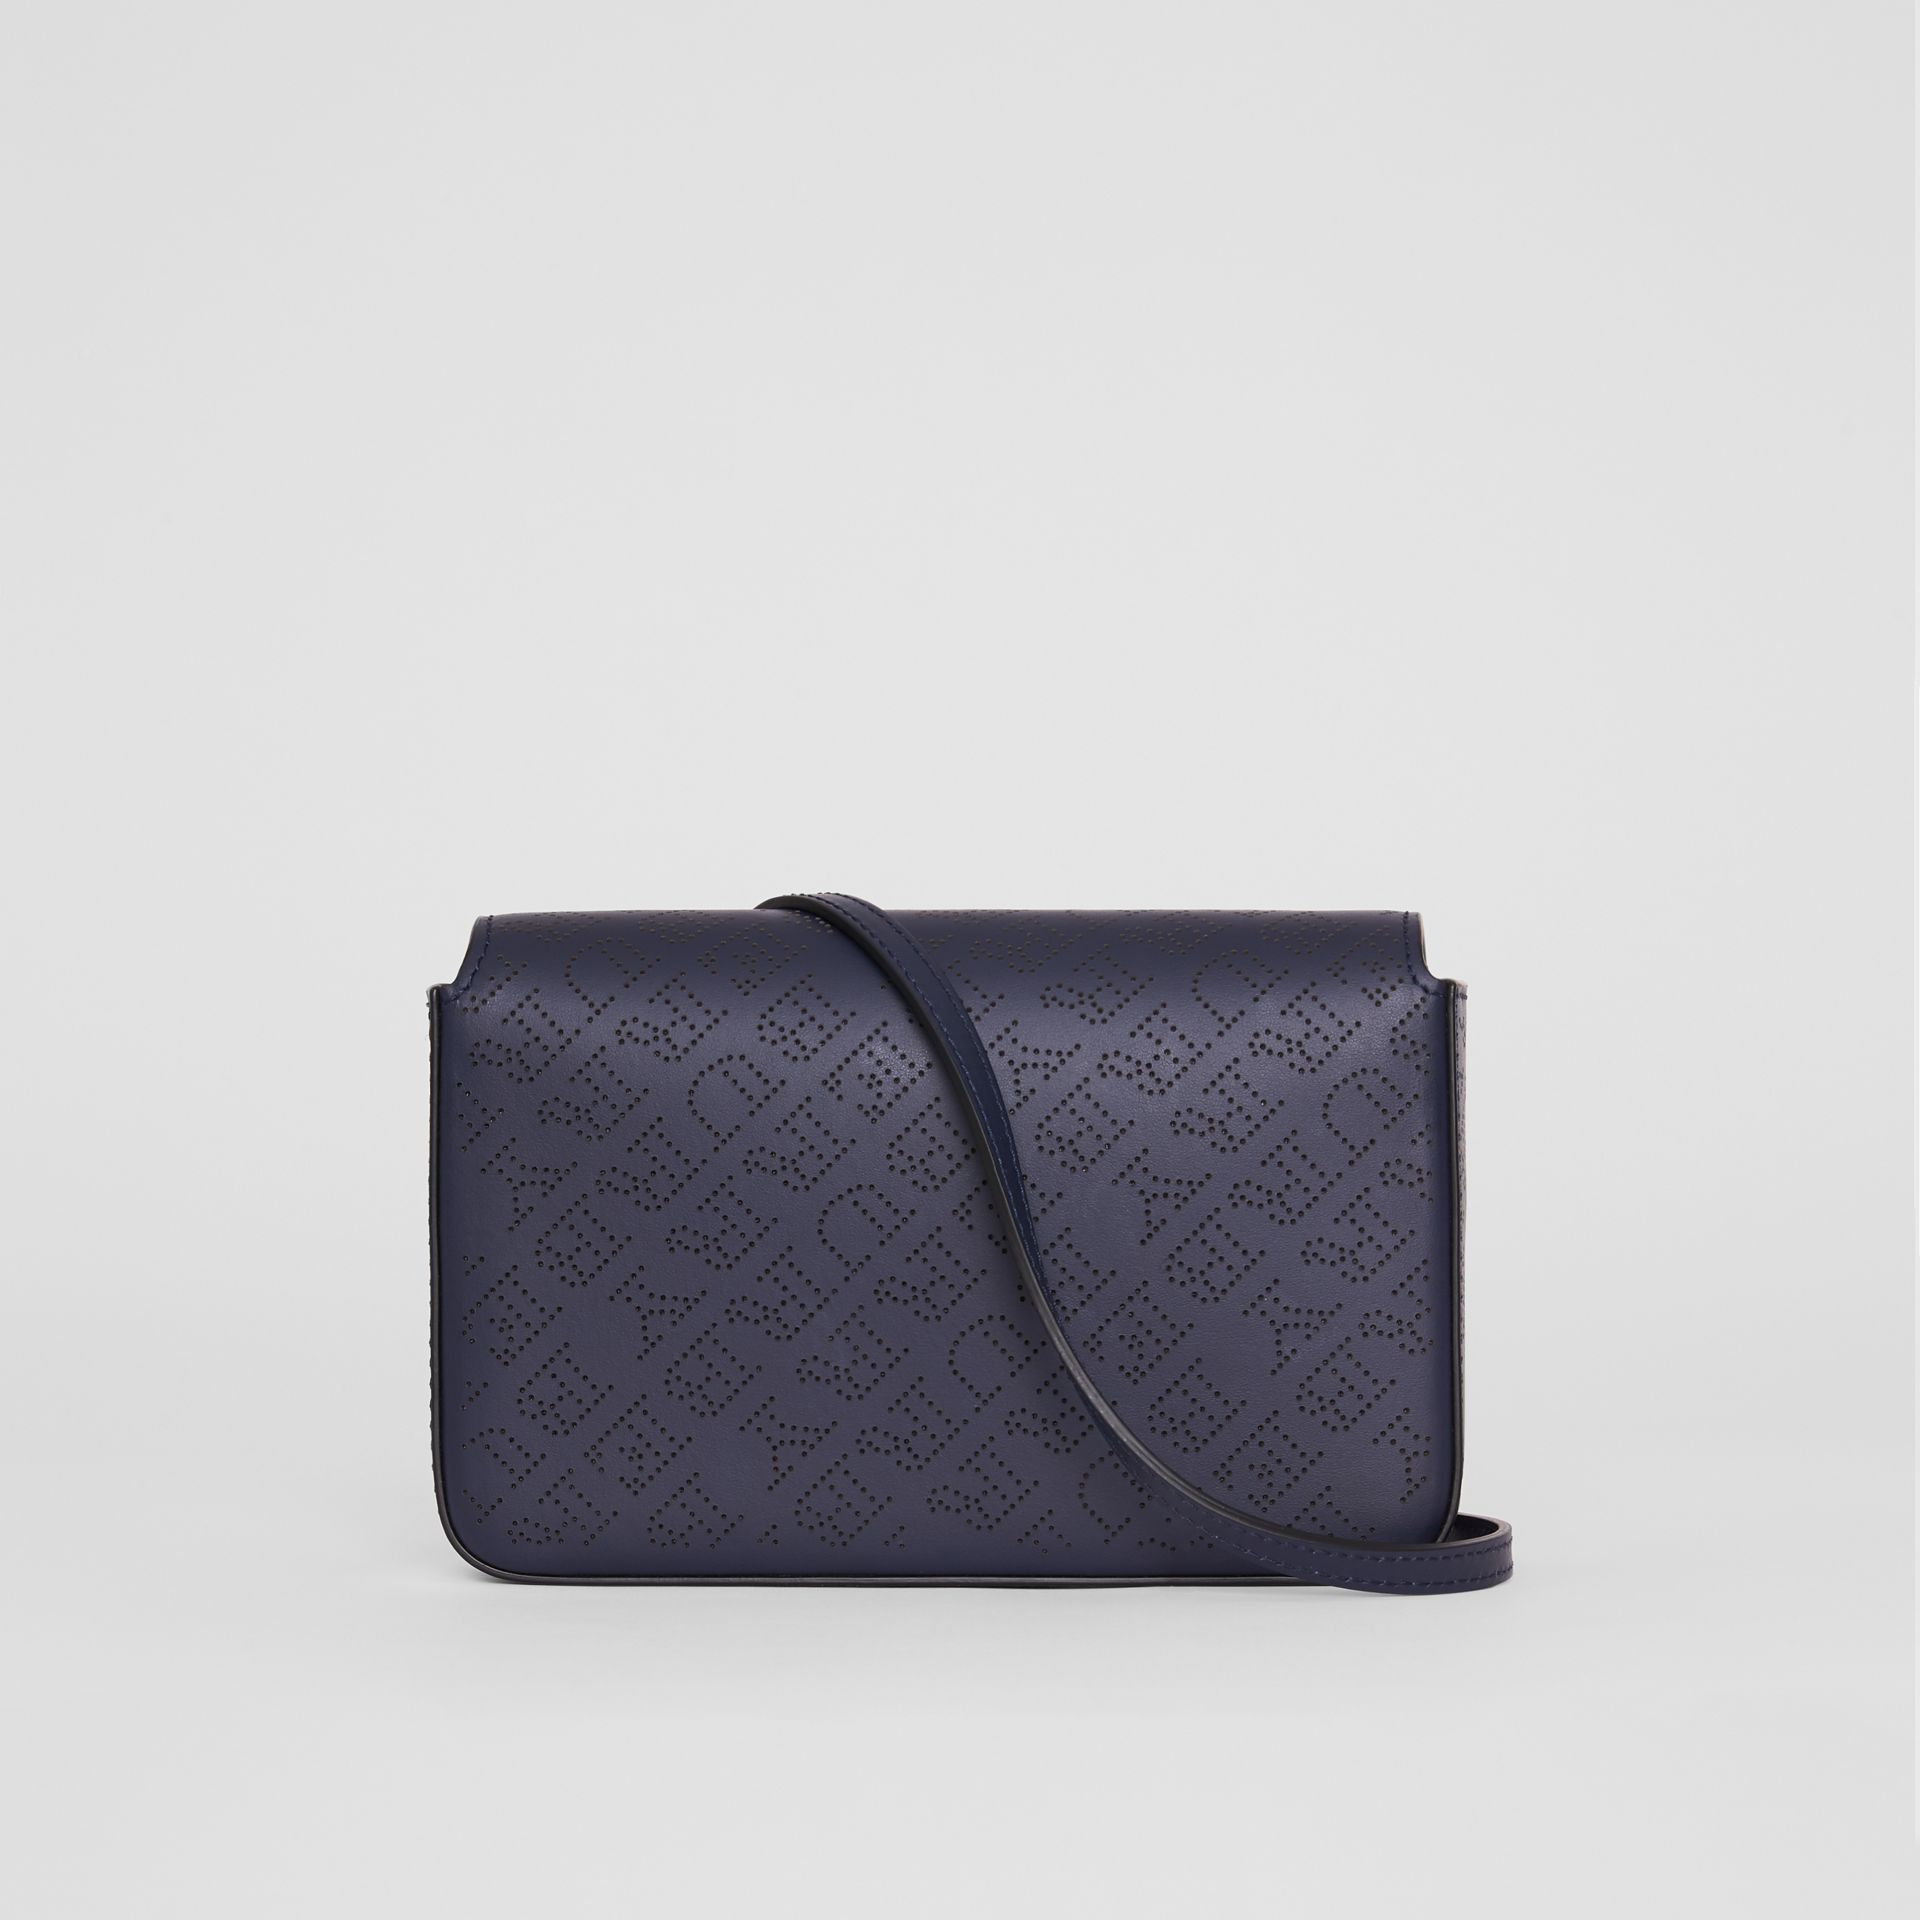 Perforated Logo Leather Wallet with Detachable Strap in Navy - Women | Burberry Australia - gallery image 5